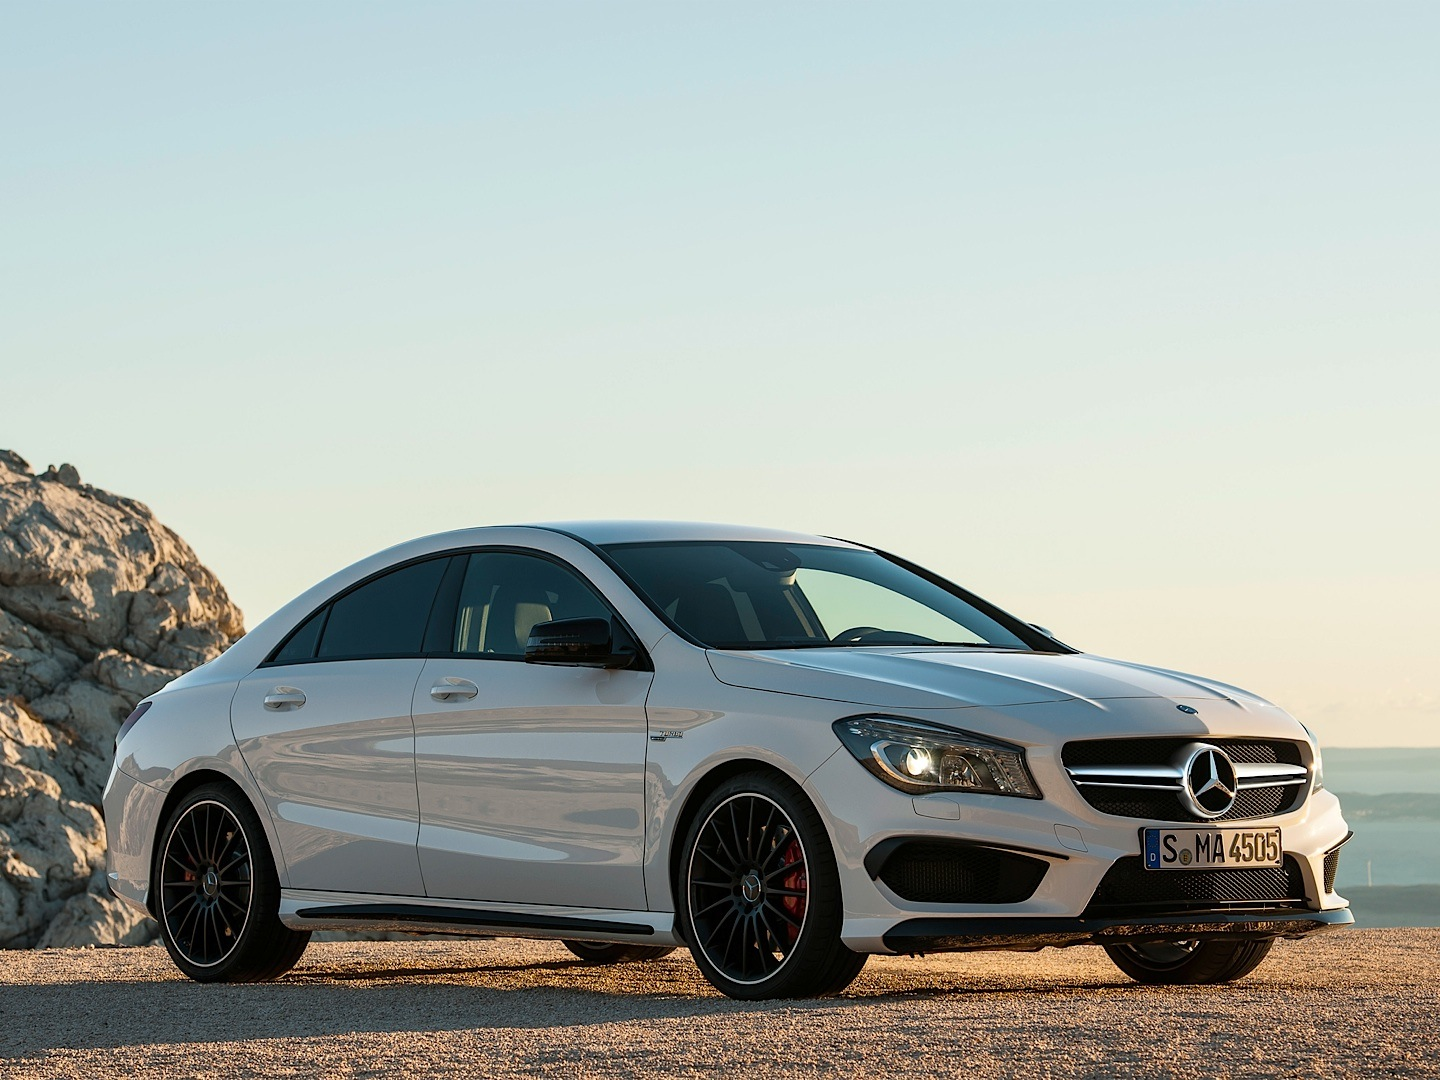 Mercedes benz cla 45 amg driven by vadimauto autoevolution for Mercedes benz cla 350